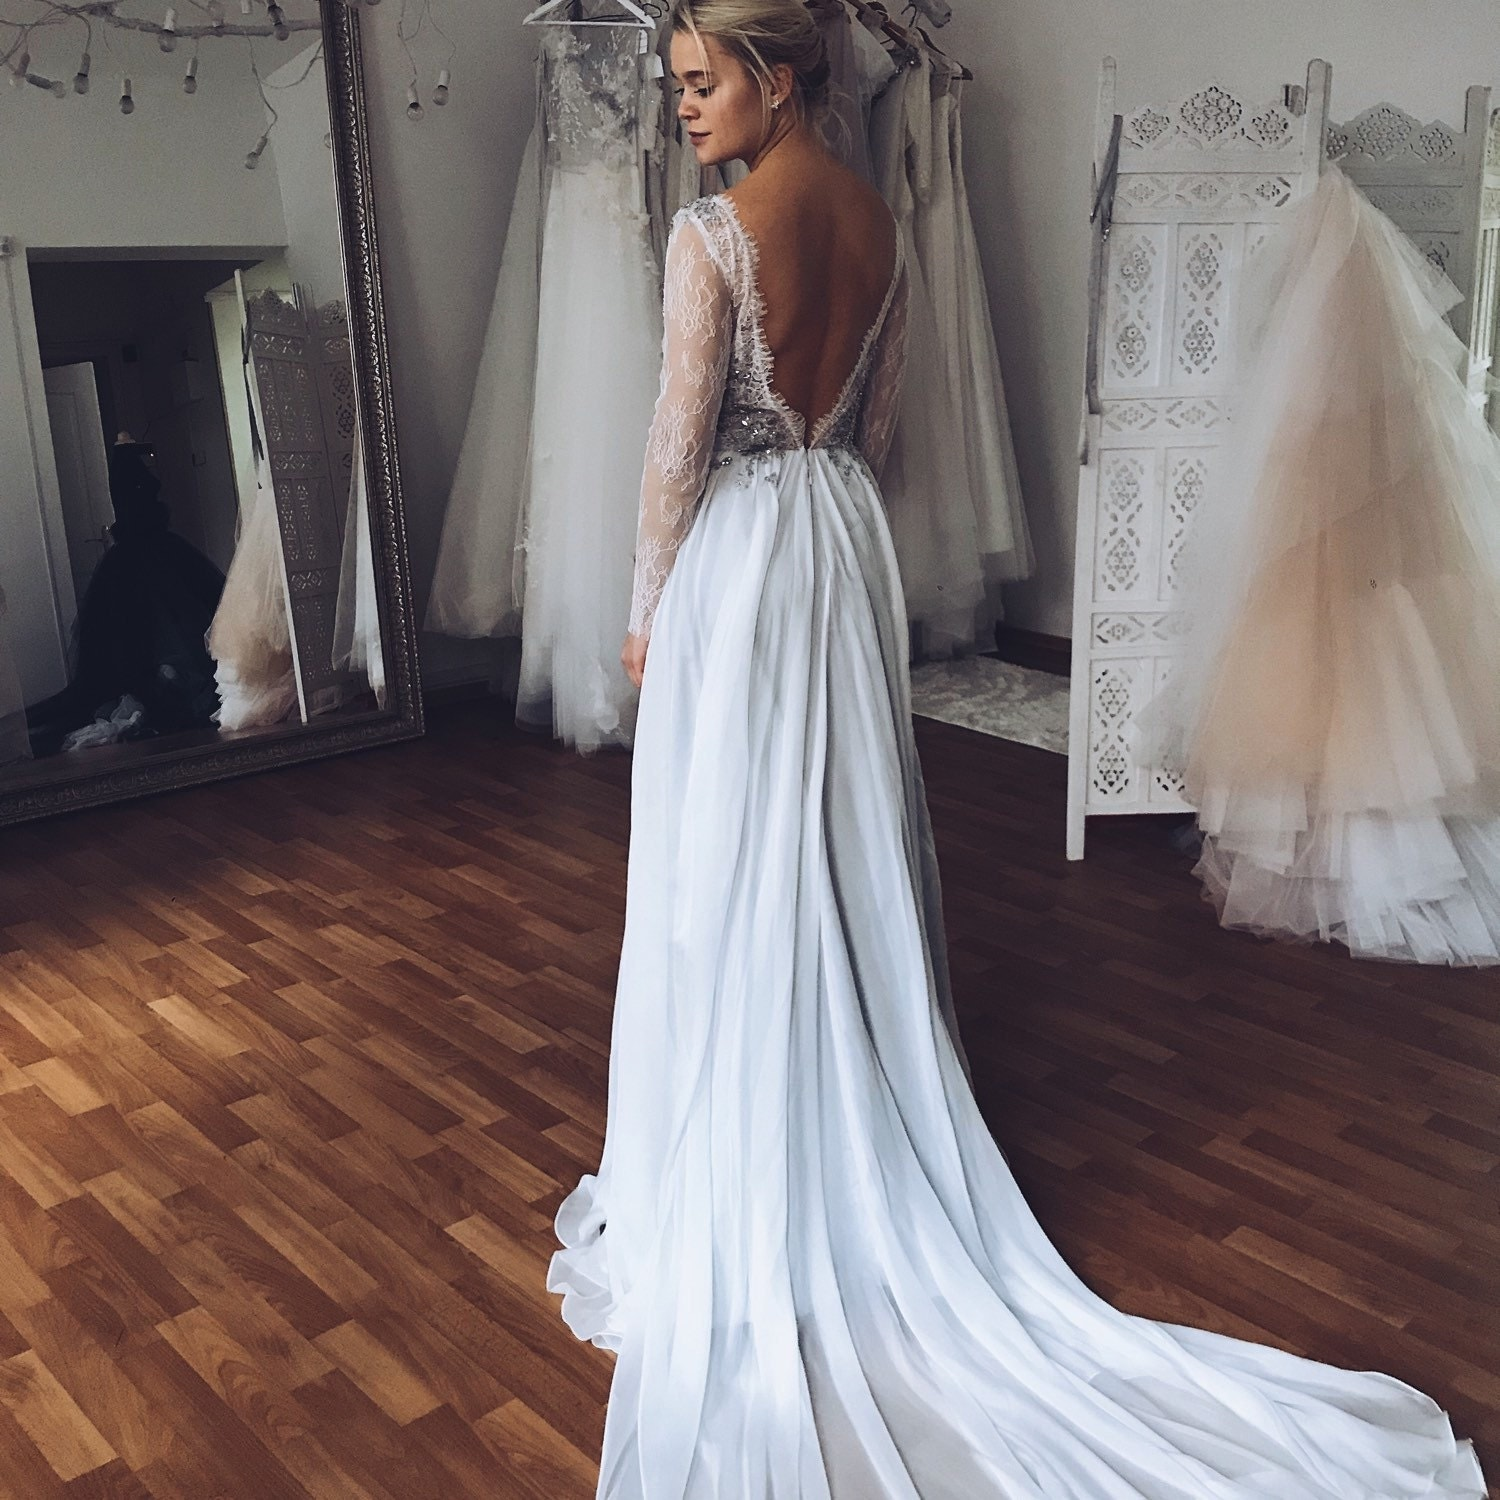 Silver gray wedding dress // Lobelia new/ Silk wedding gown